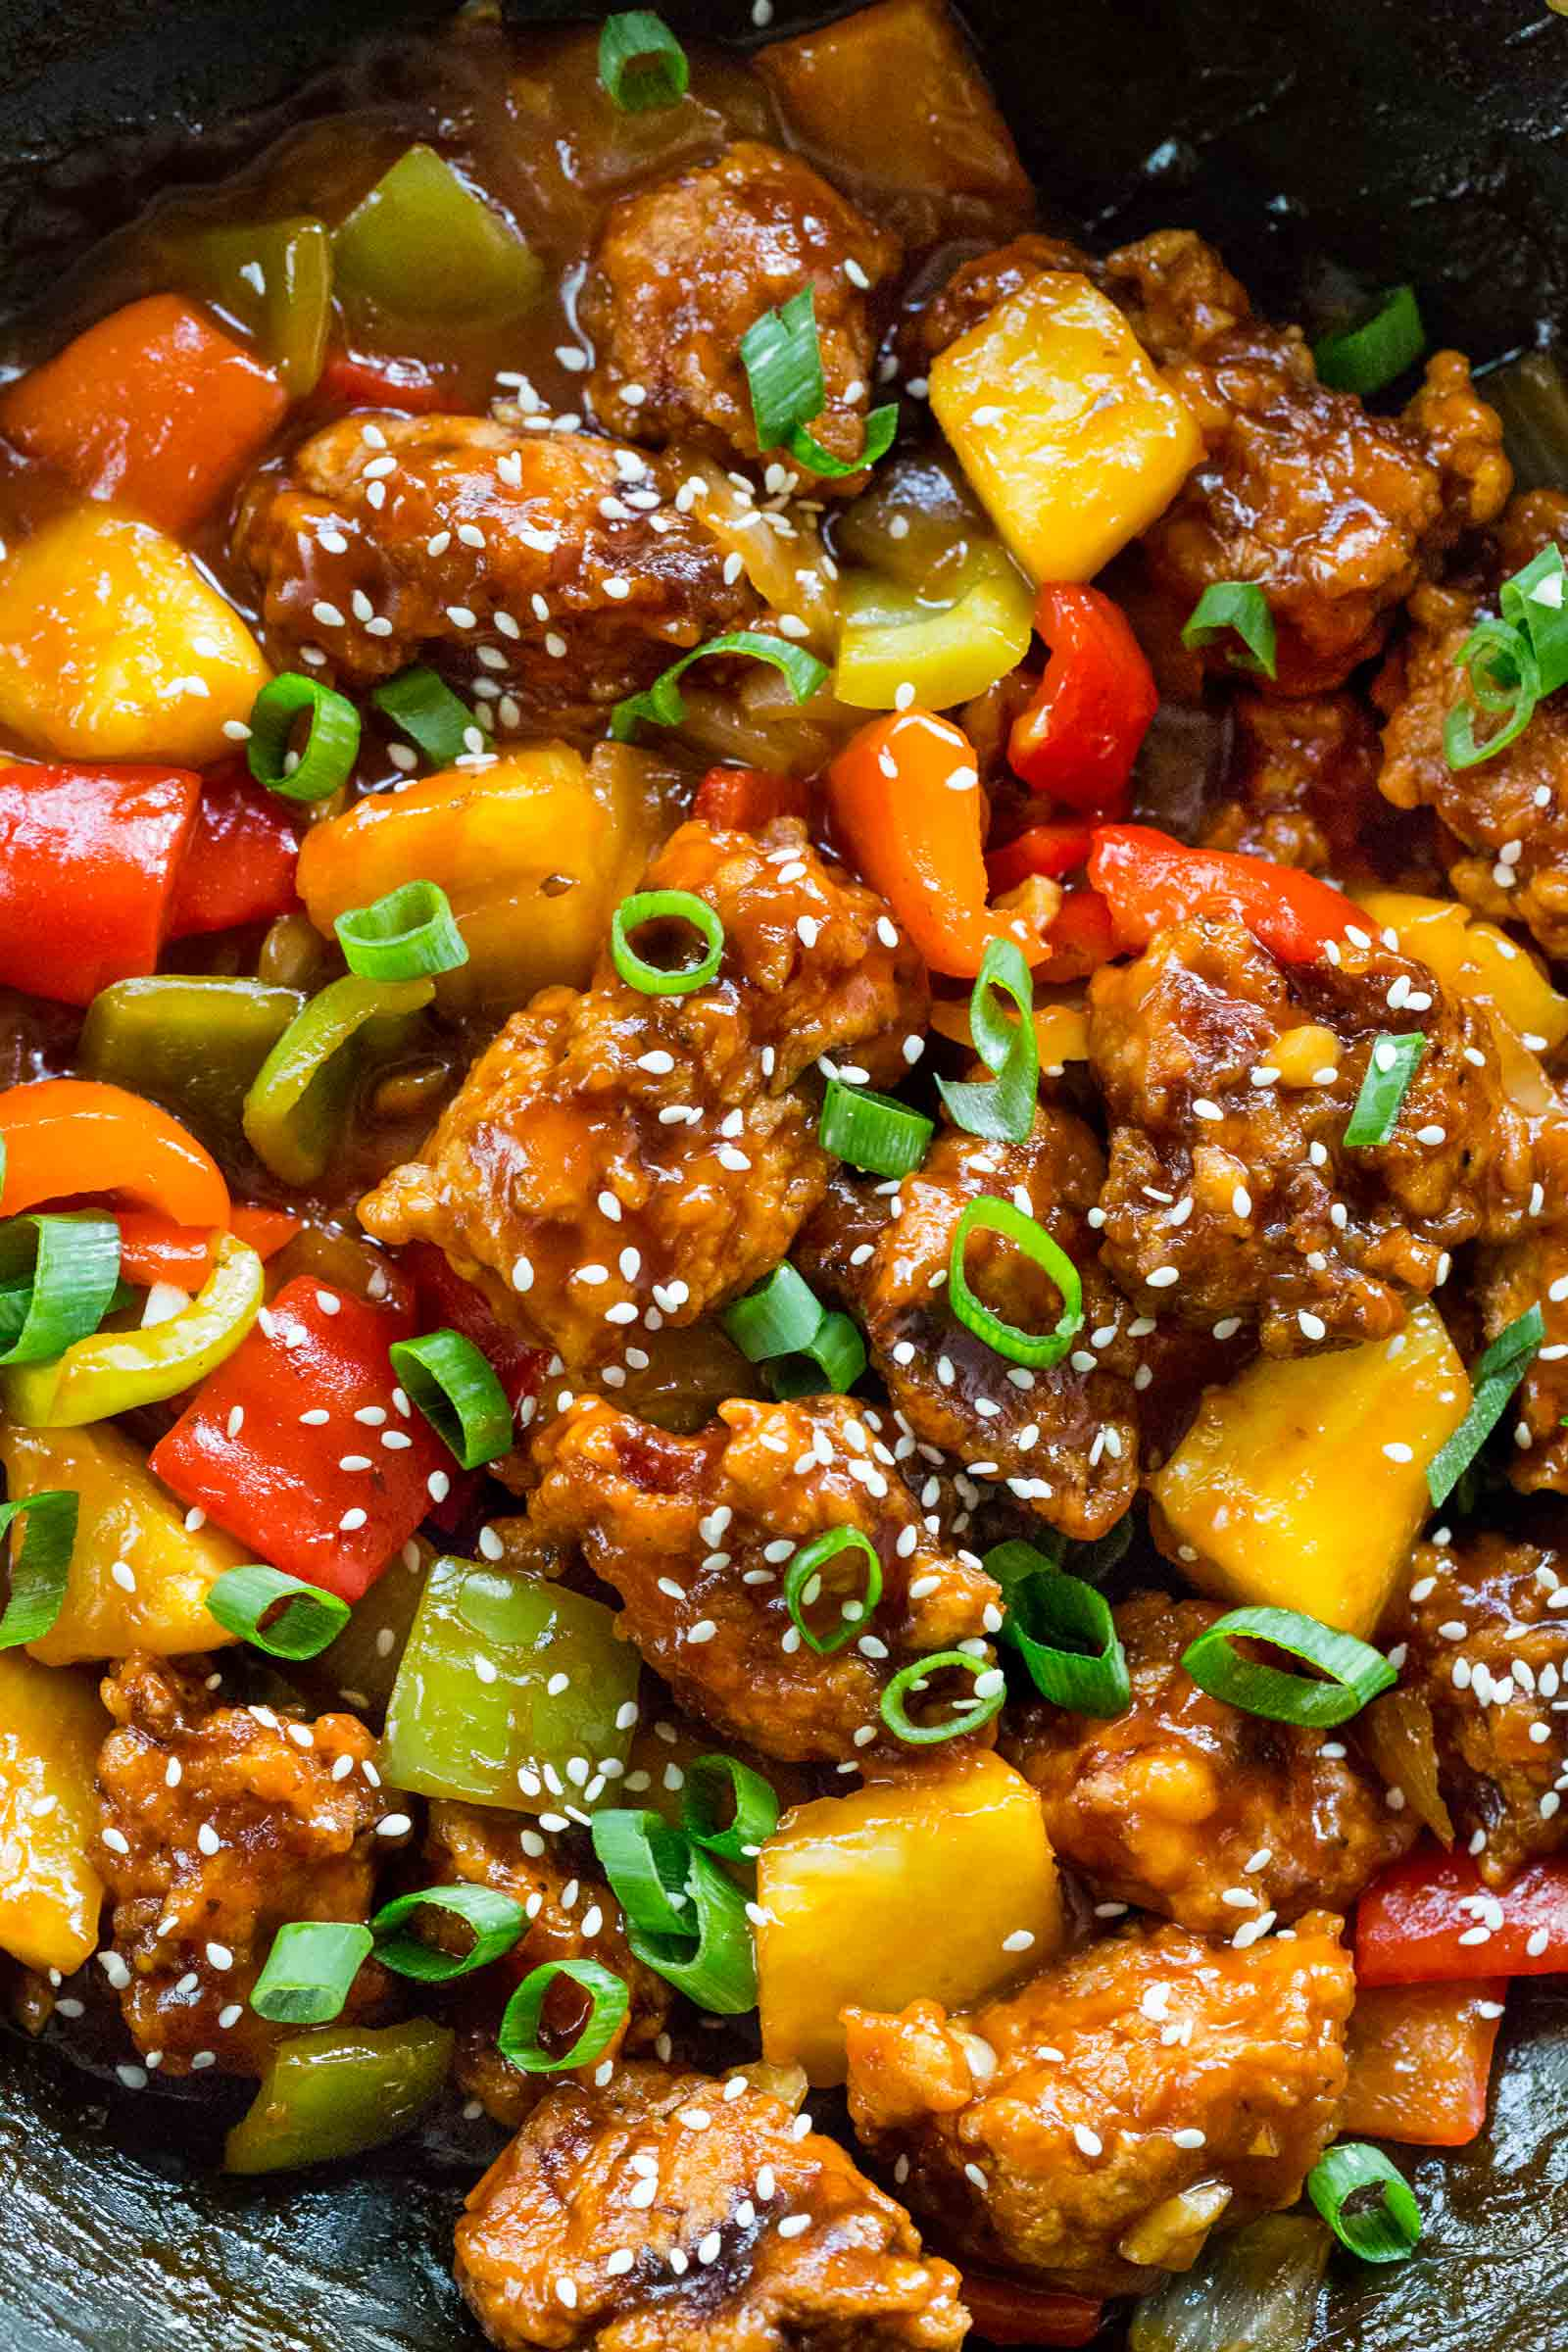 sweet and sour pork with vegetables in a wok